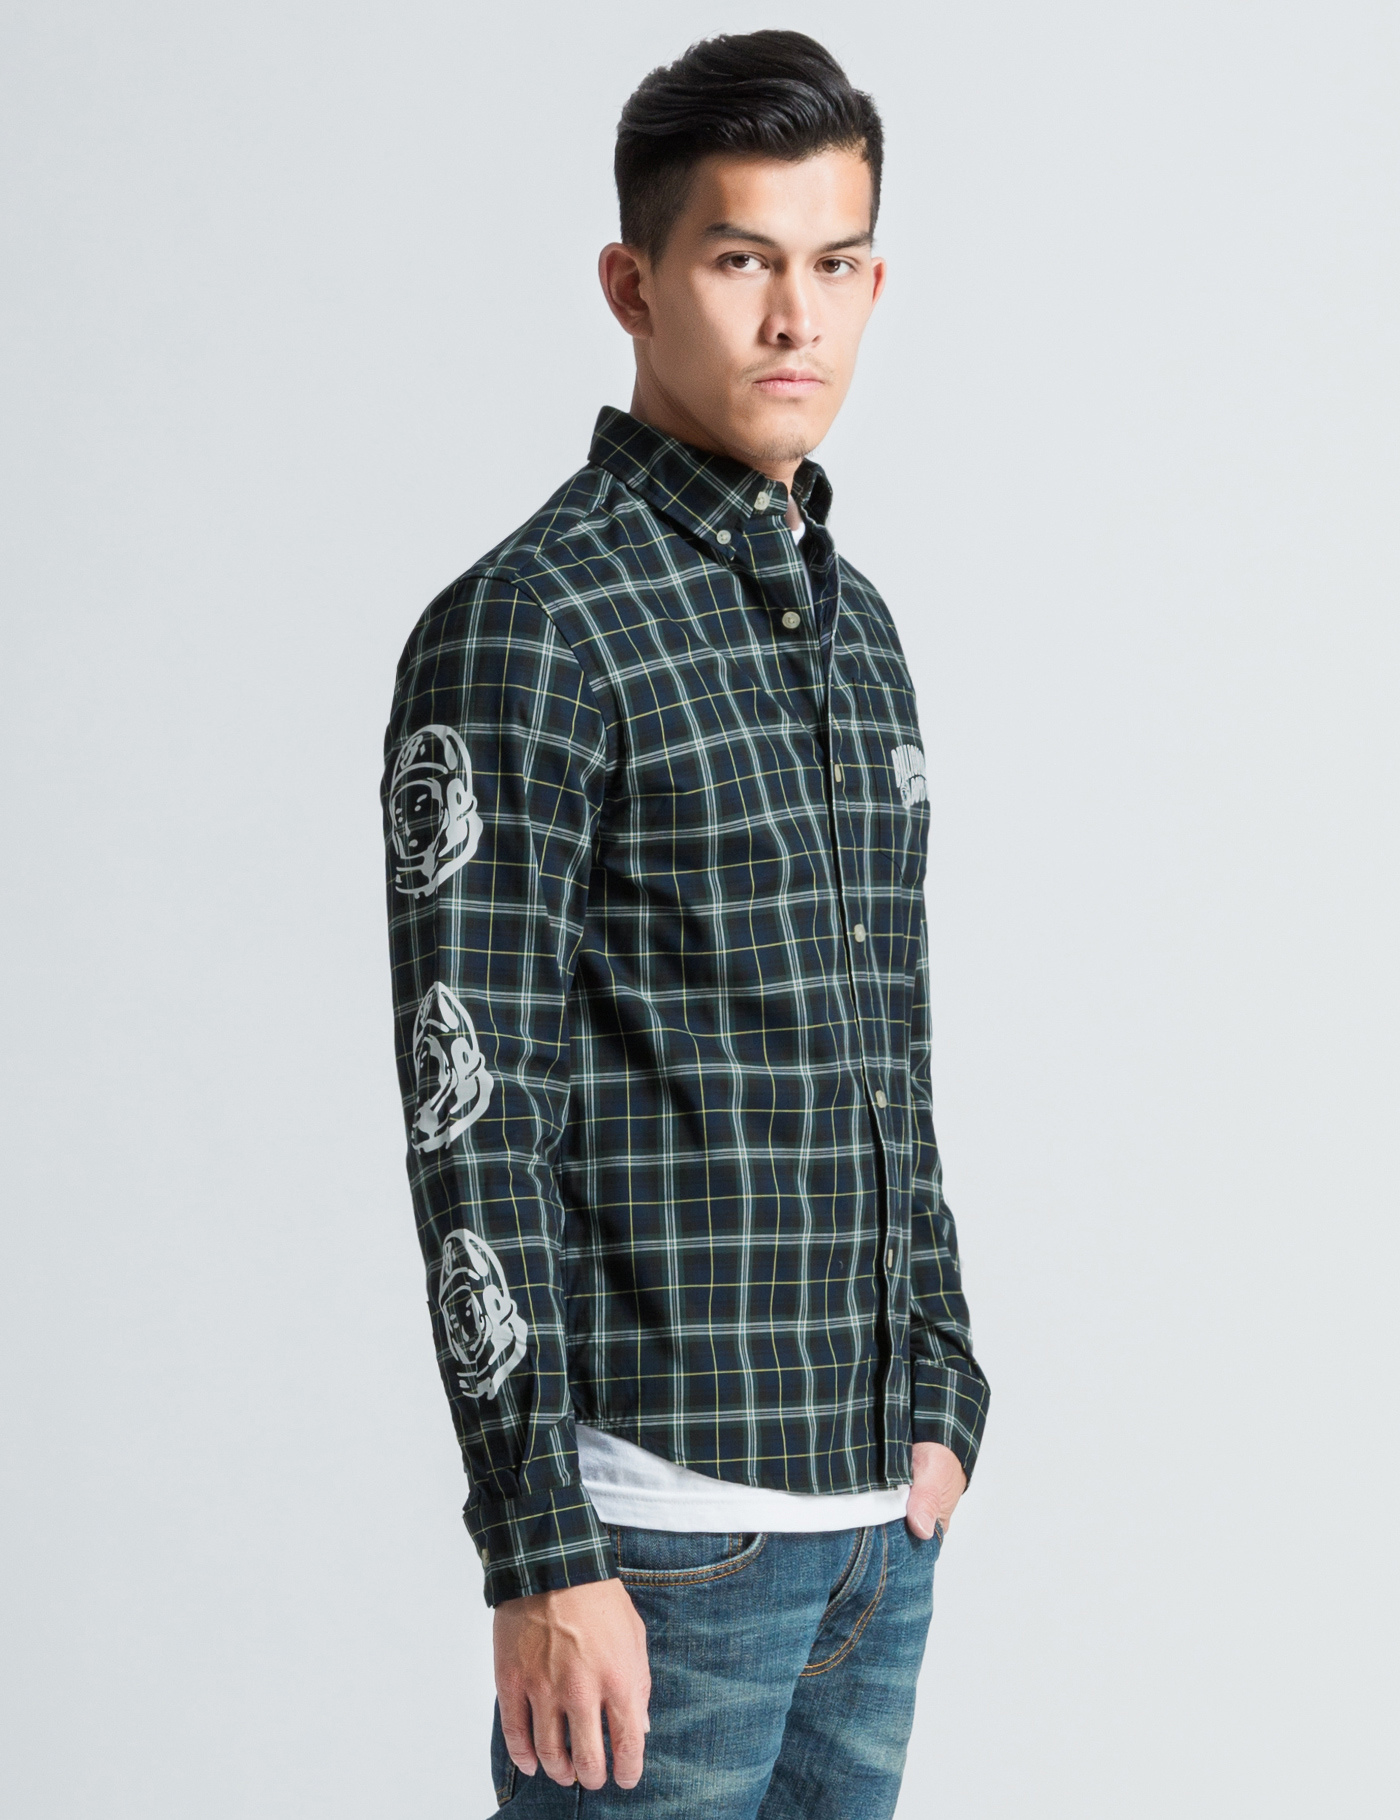 Billionaire Boys Club Ice Cream Green Plaid Button